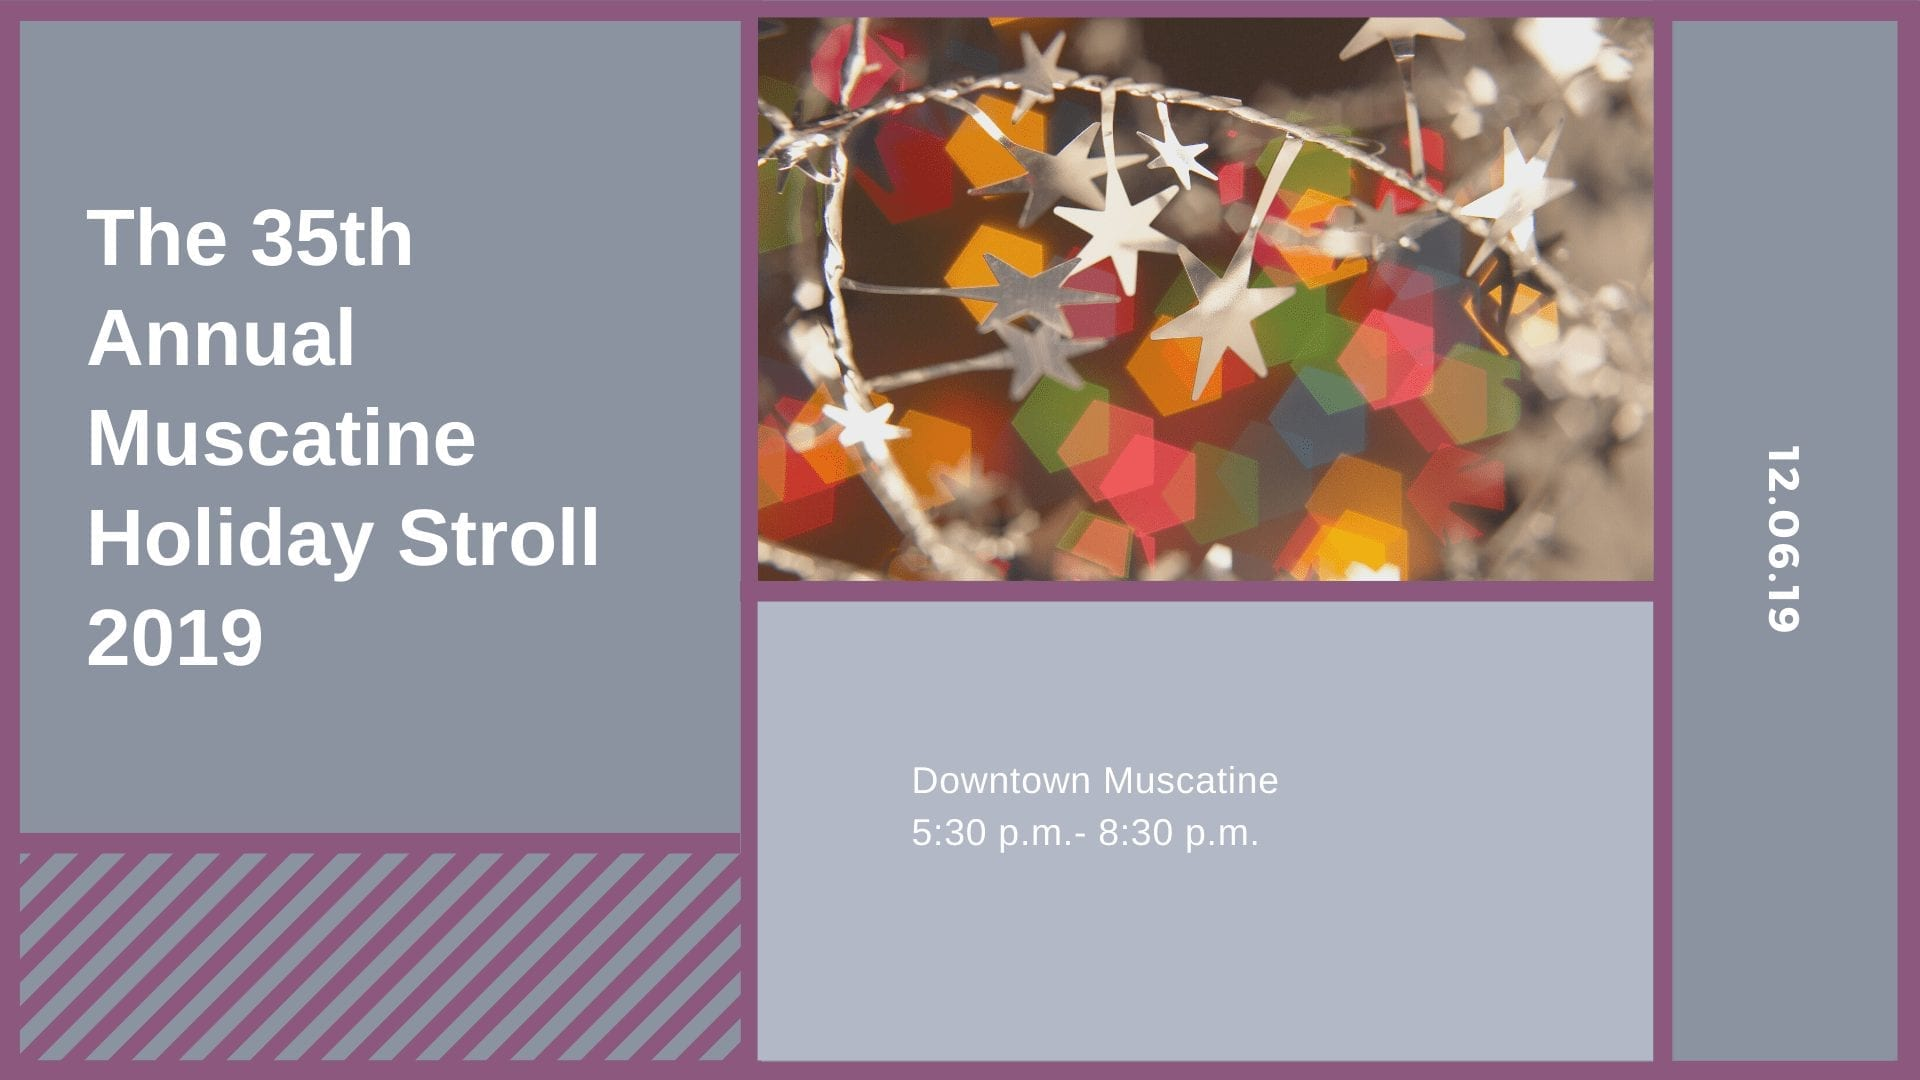 The 35th Annual Muscatine Holiday Stroll 2019